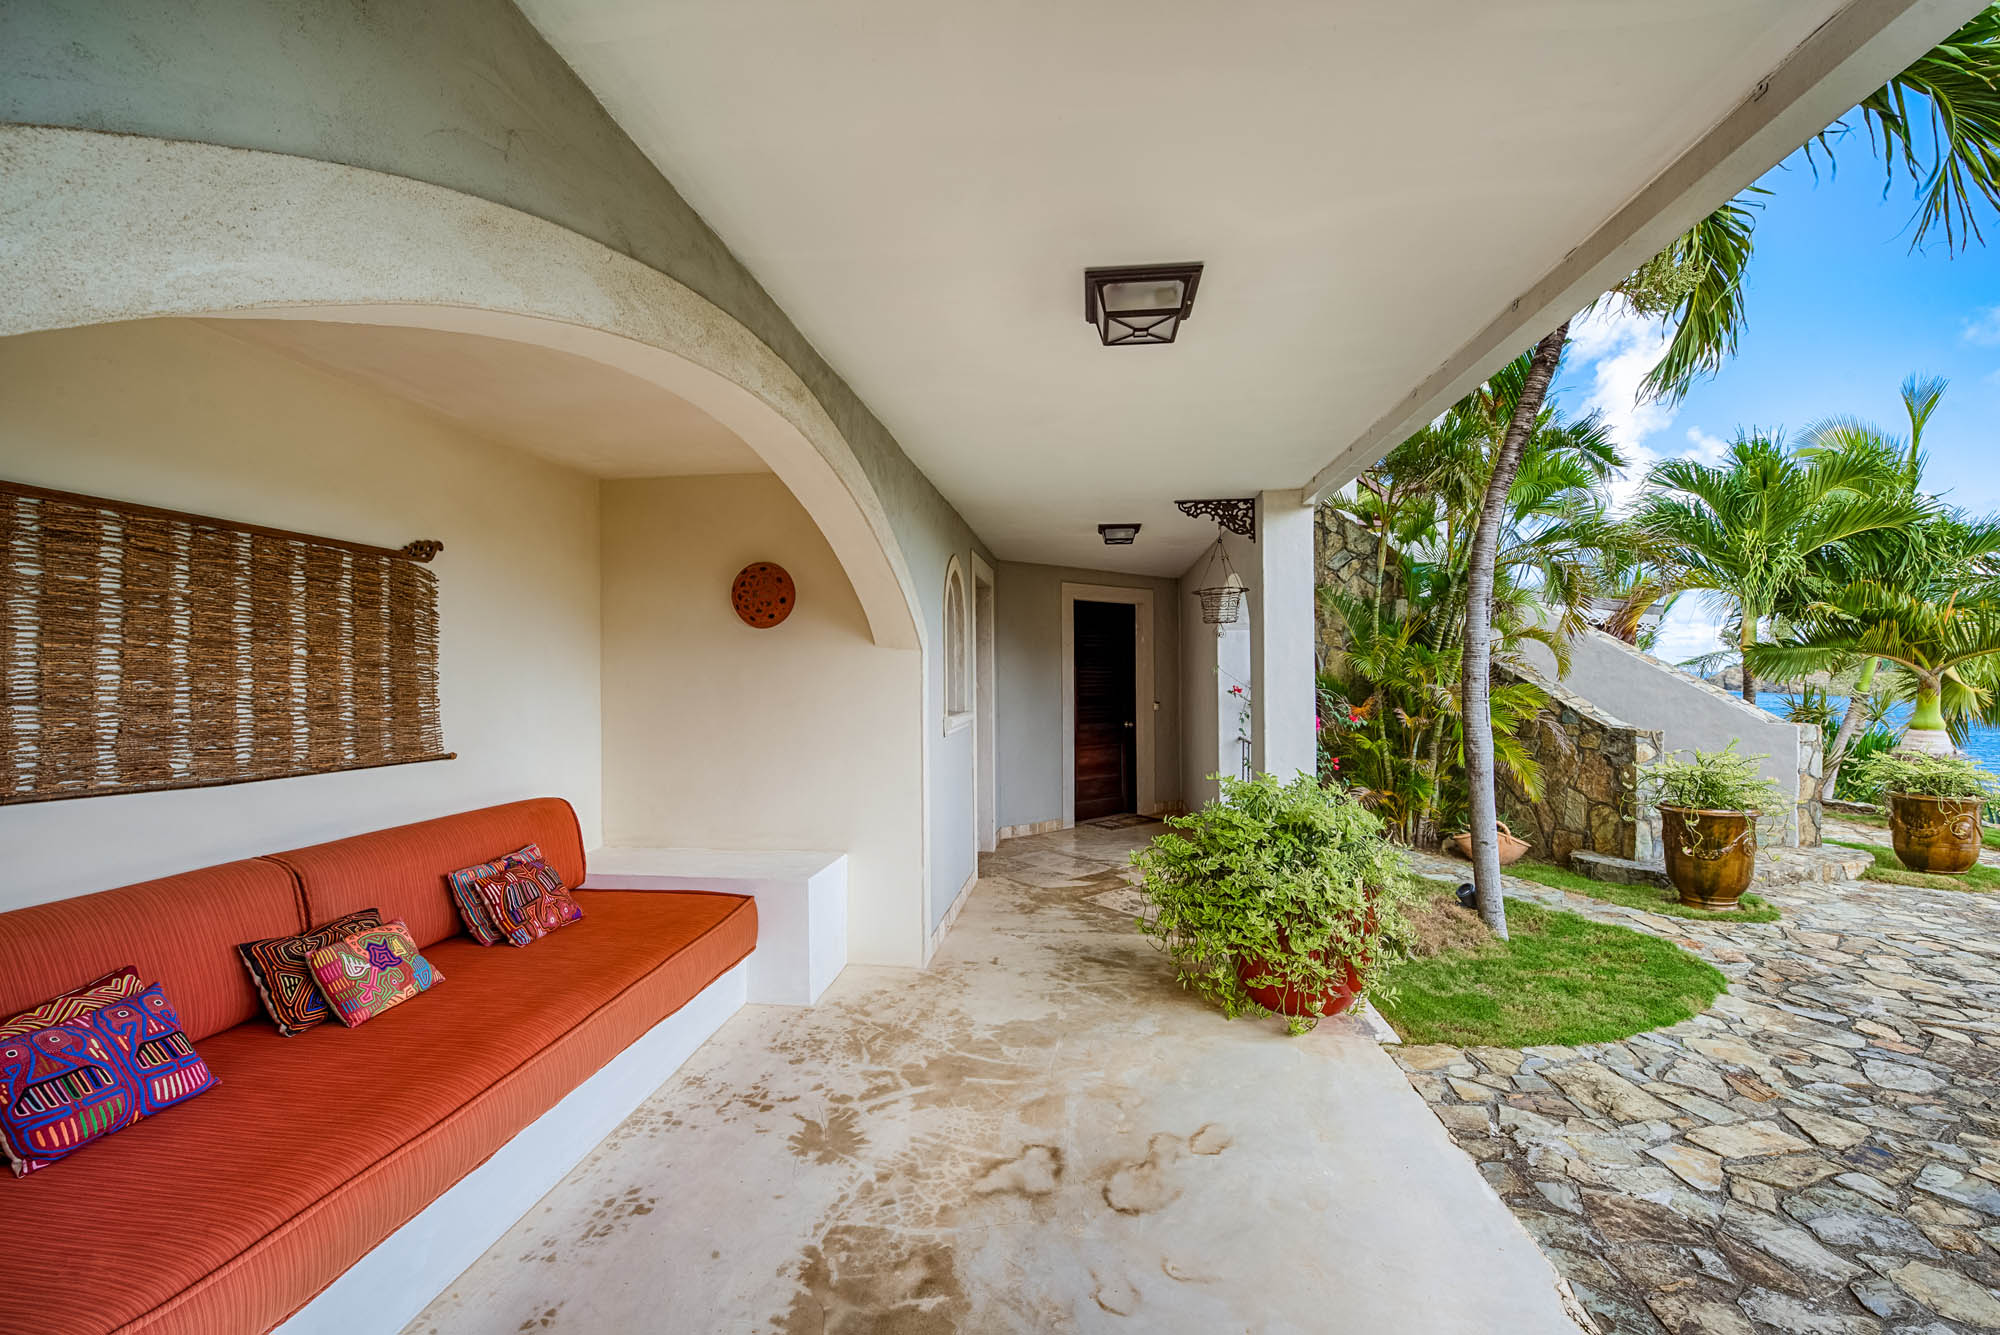 Enjoy your holidays at this luxury St.Martin villa rental.